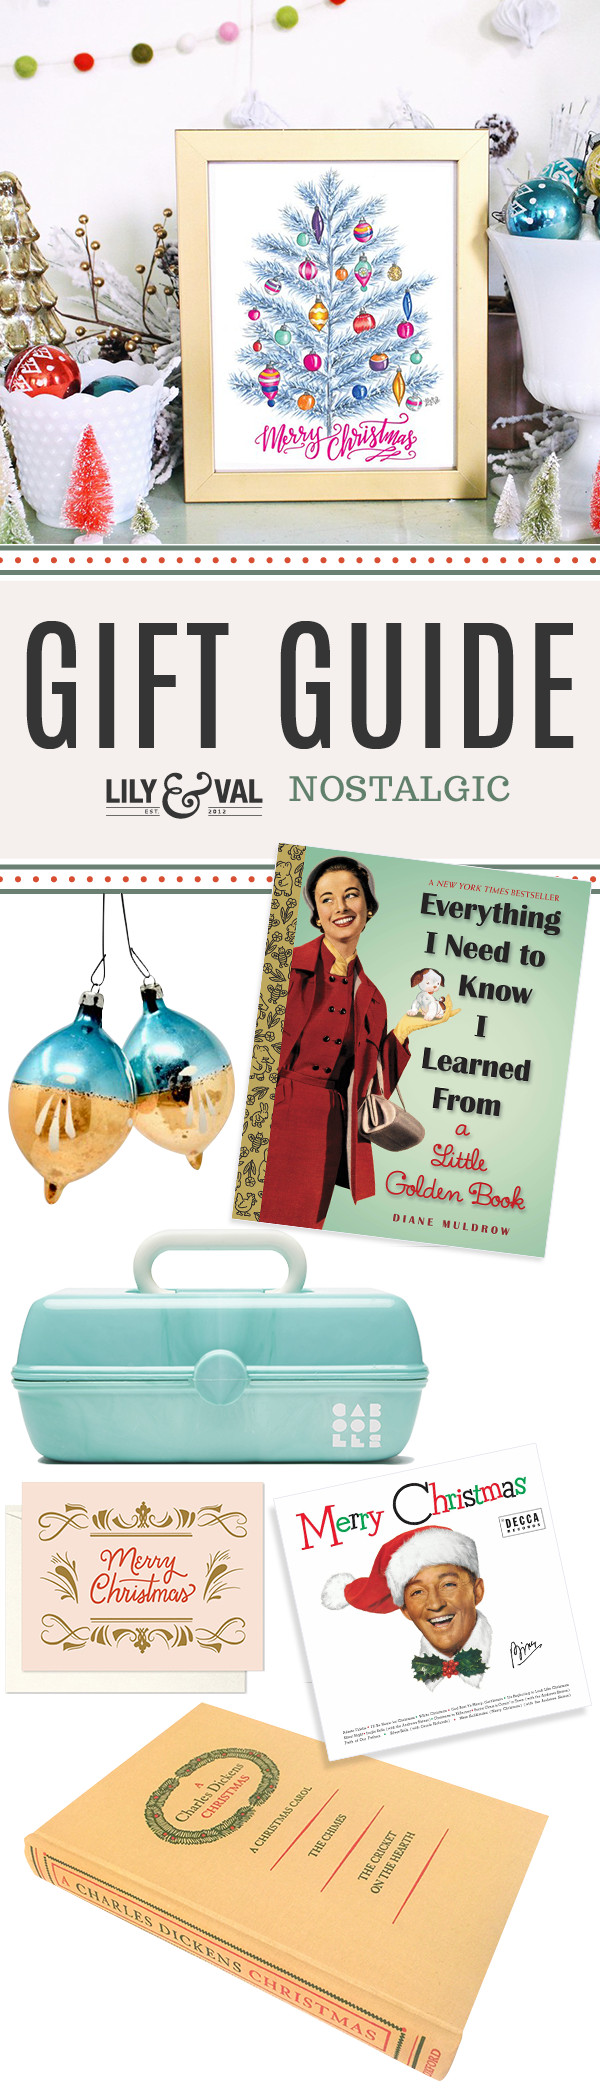 Lily & Val Gift Guide: The Nostalgic Holiday